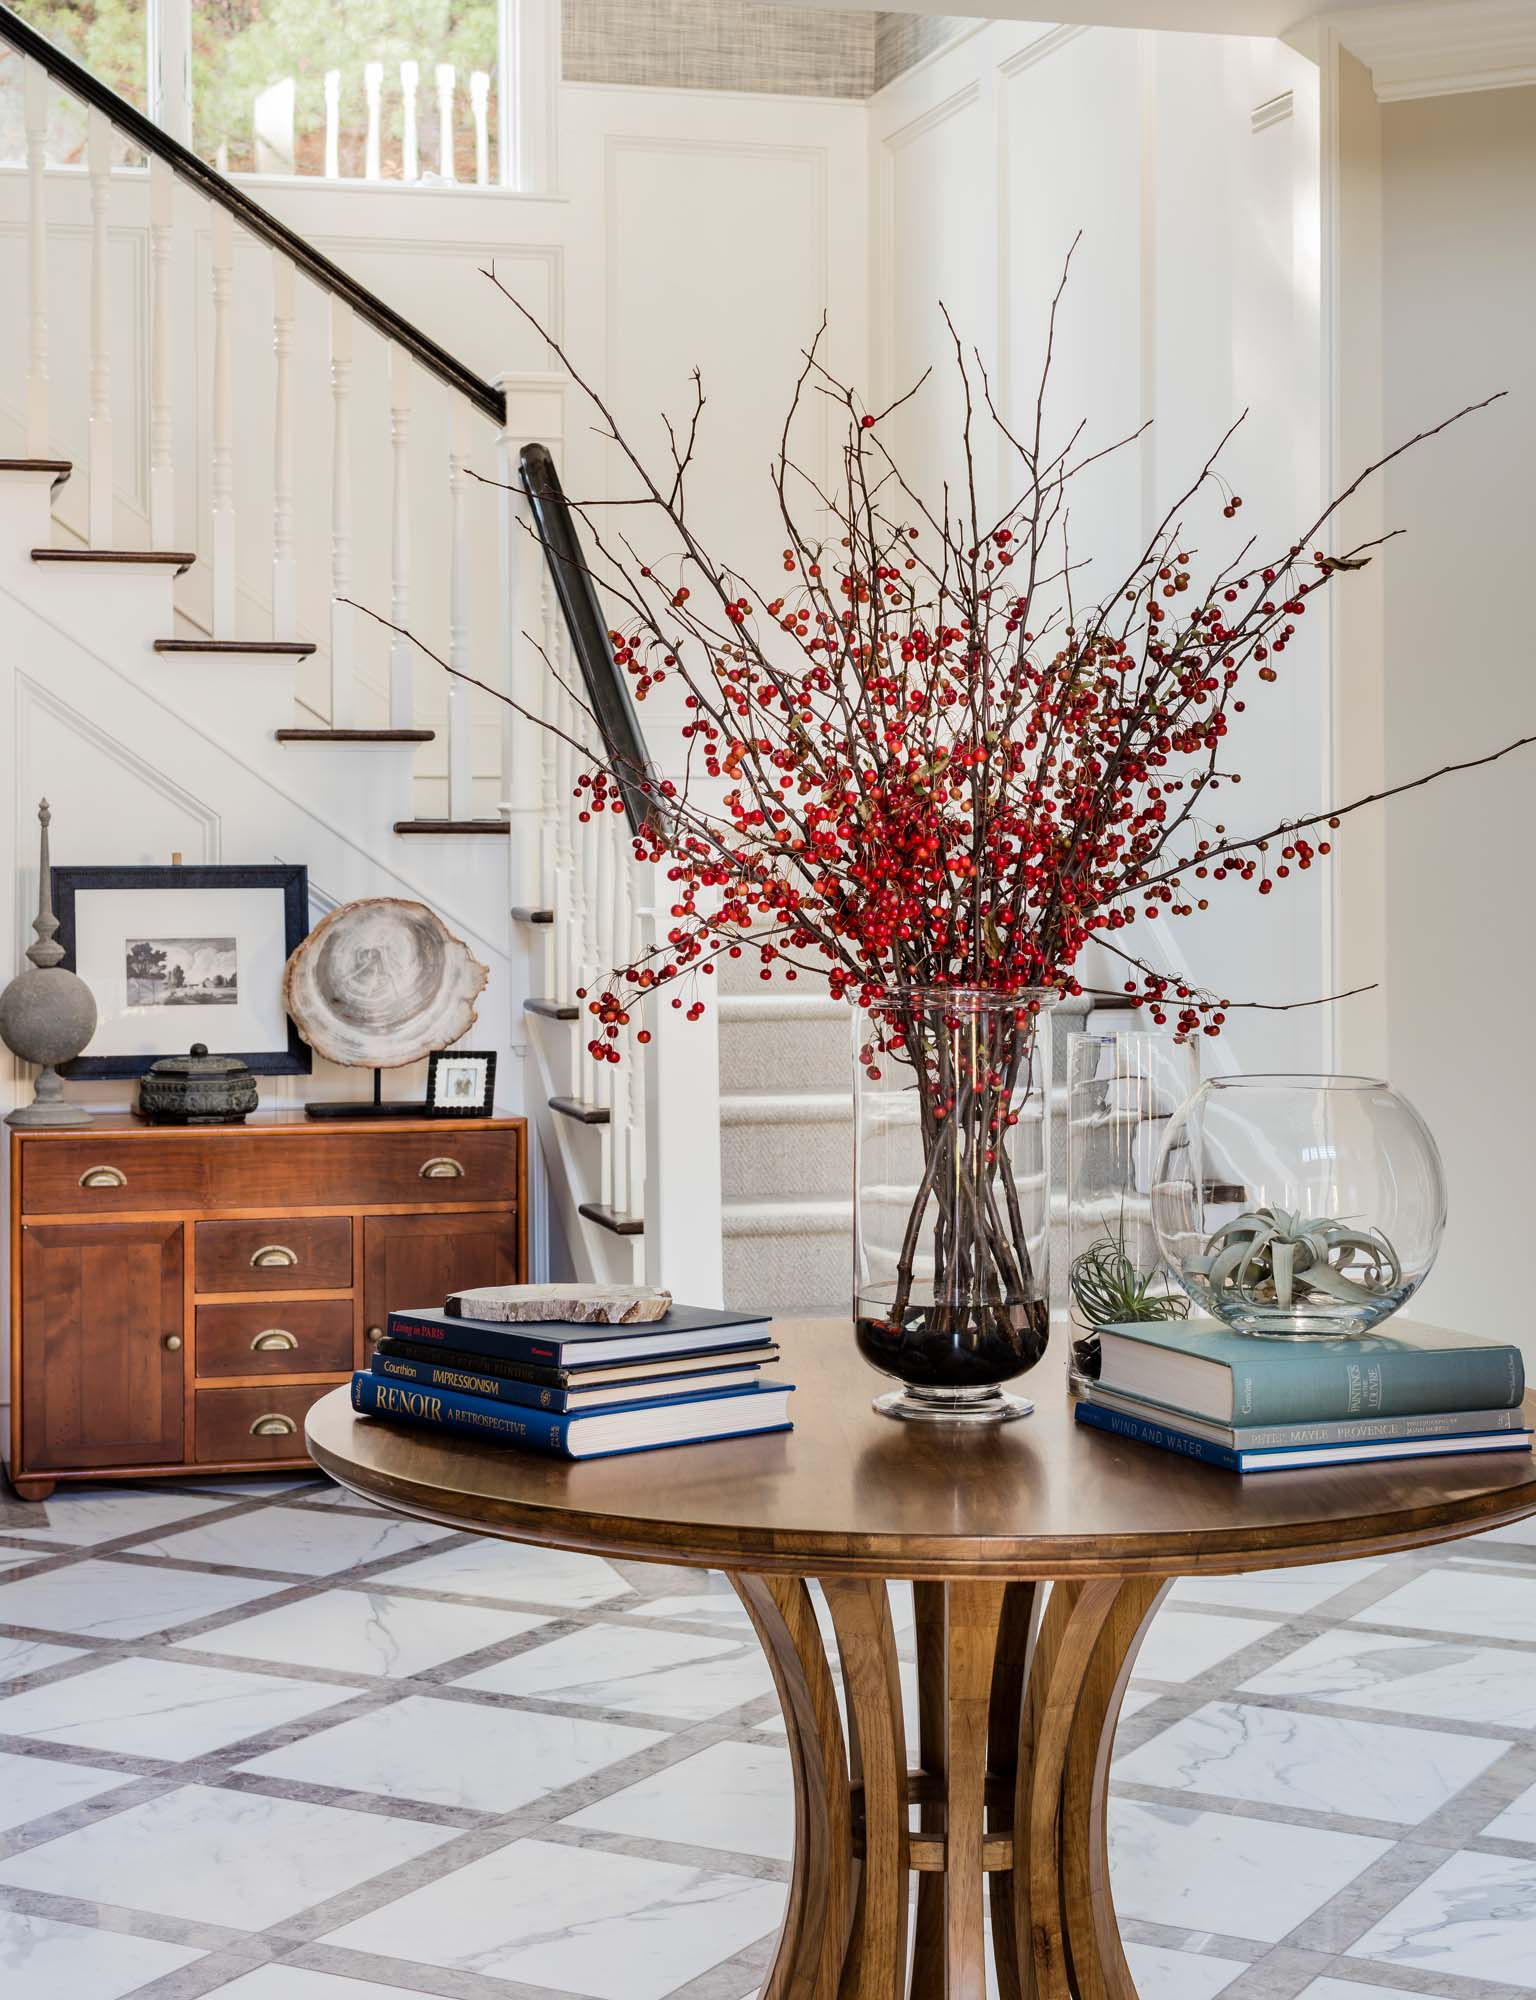 House interior with round wooden table, books, staircase and wooden drawer, statuary marble, honed statuary marble, grange chest, grange commode, red berries, air plant, air plants,